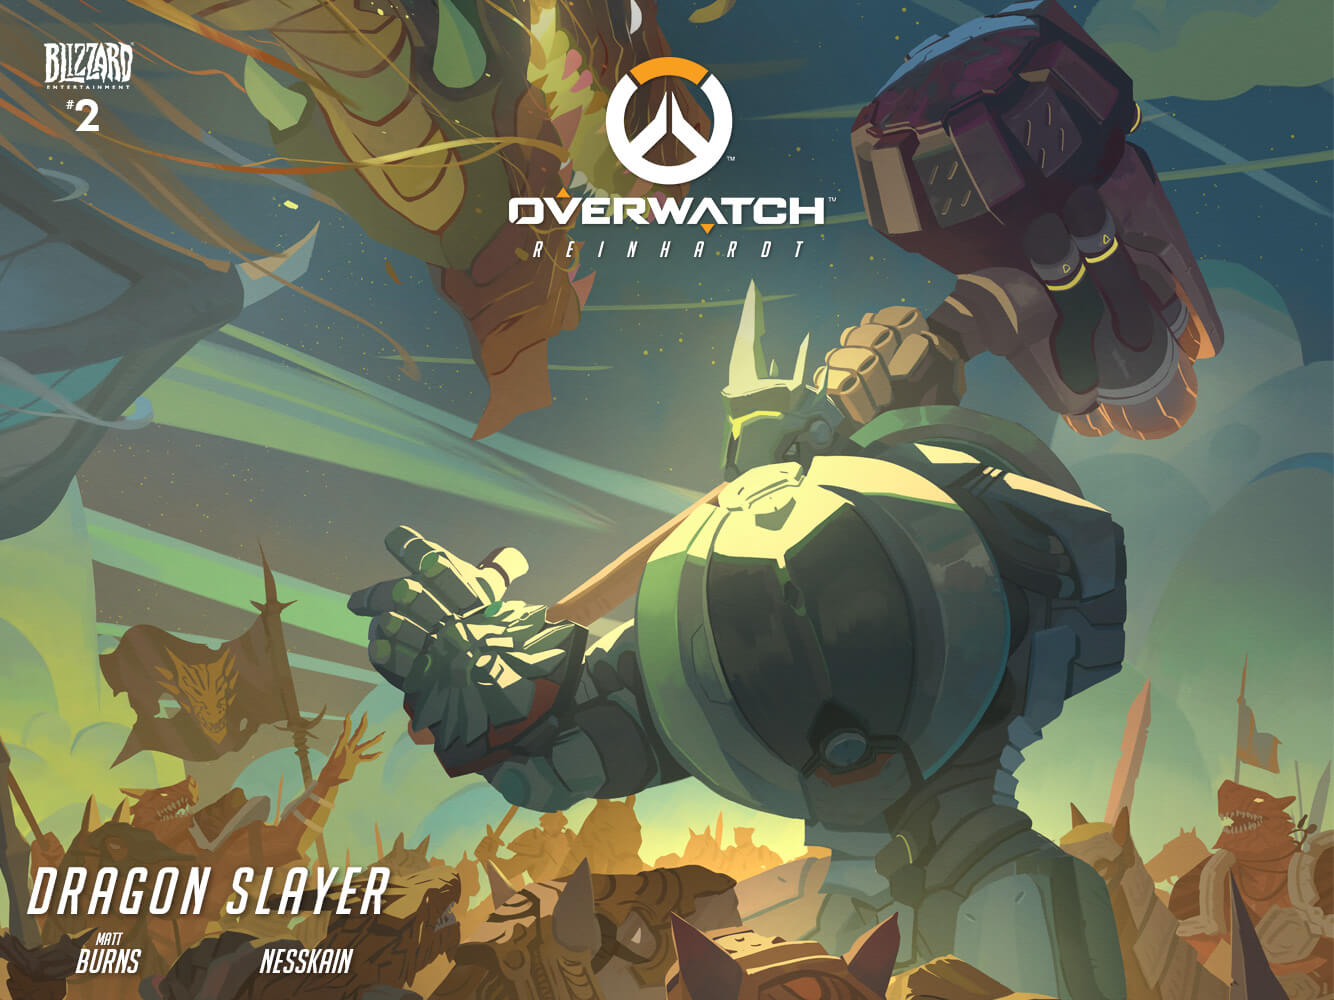 Dragon Slayer | Overwatch Wiki | FANDOM powered by Wikia